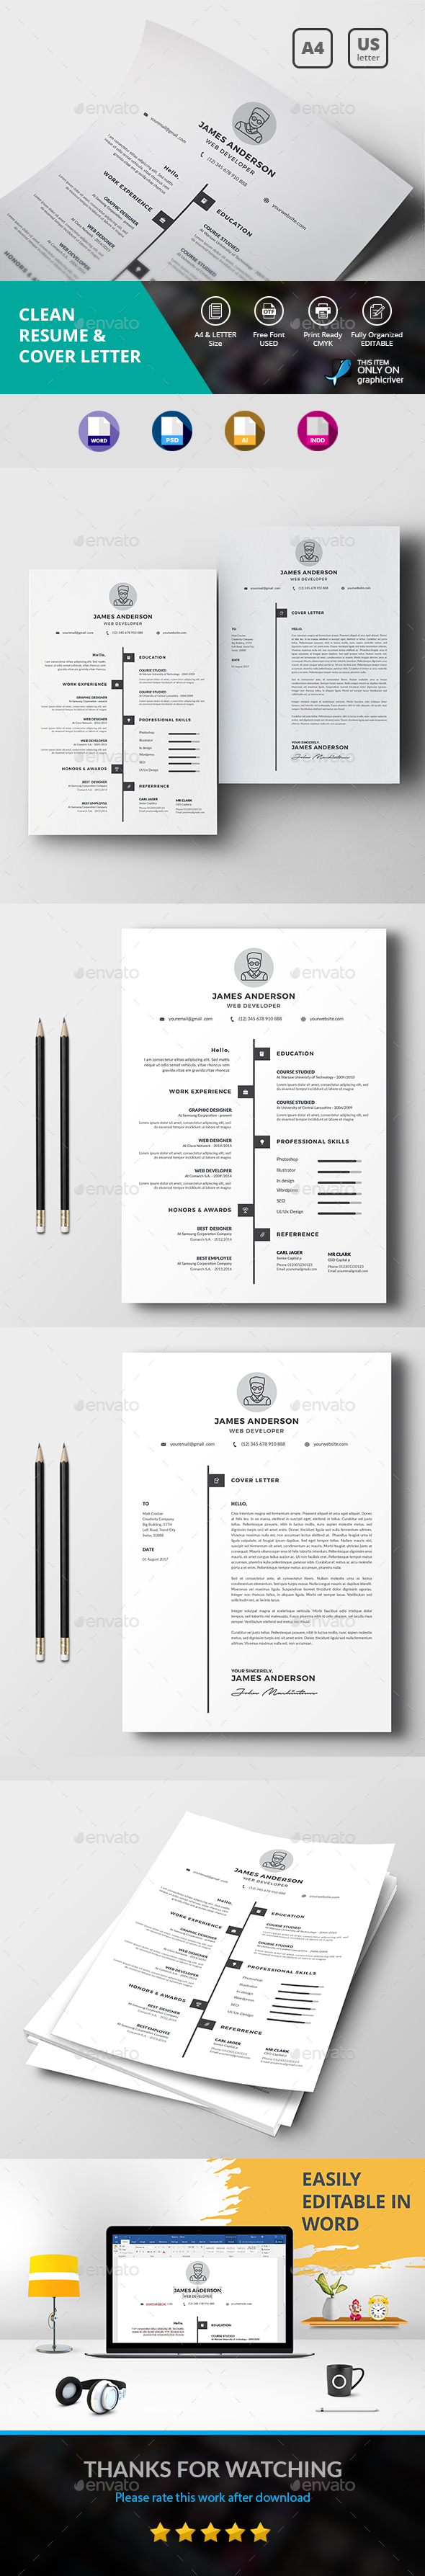 Clean Resume & Cover Letter - Resumes Stationery